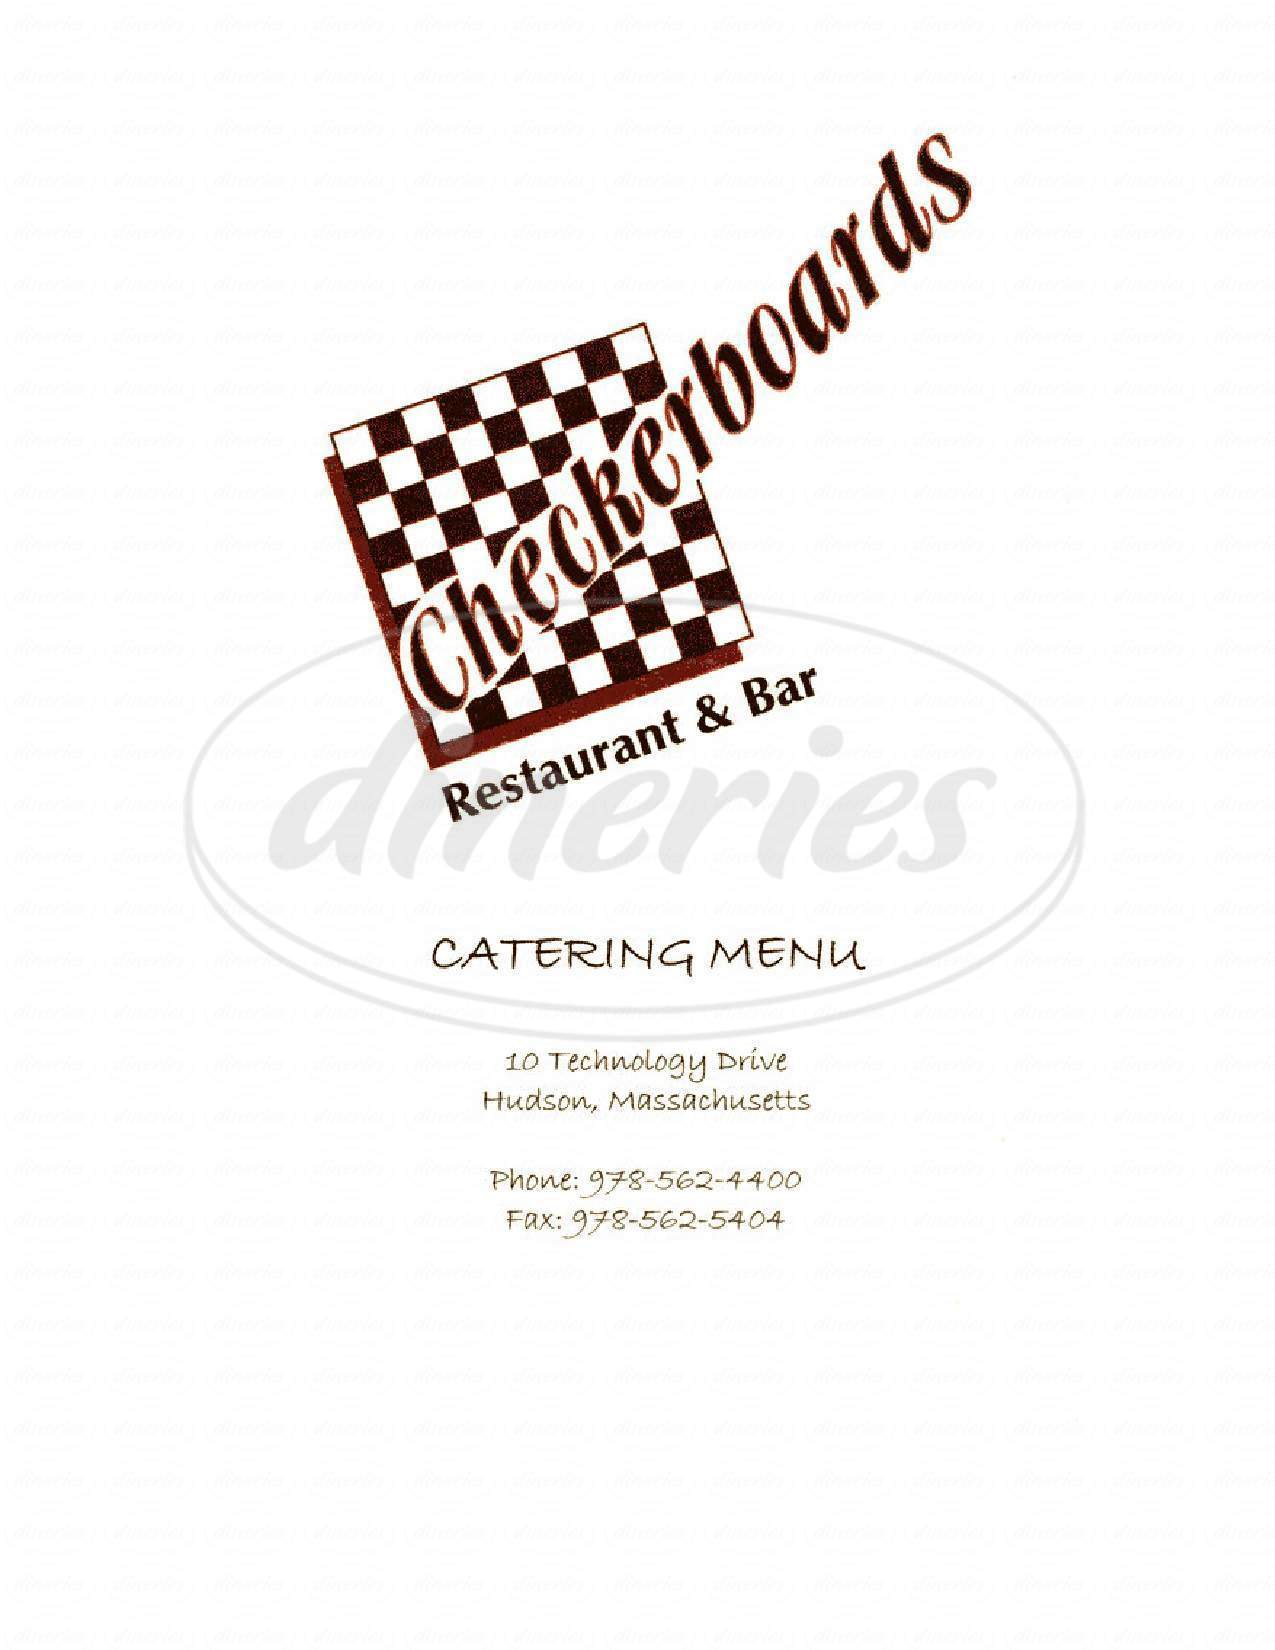 menu for Checkerboards Pizza Restaurant & Bar